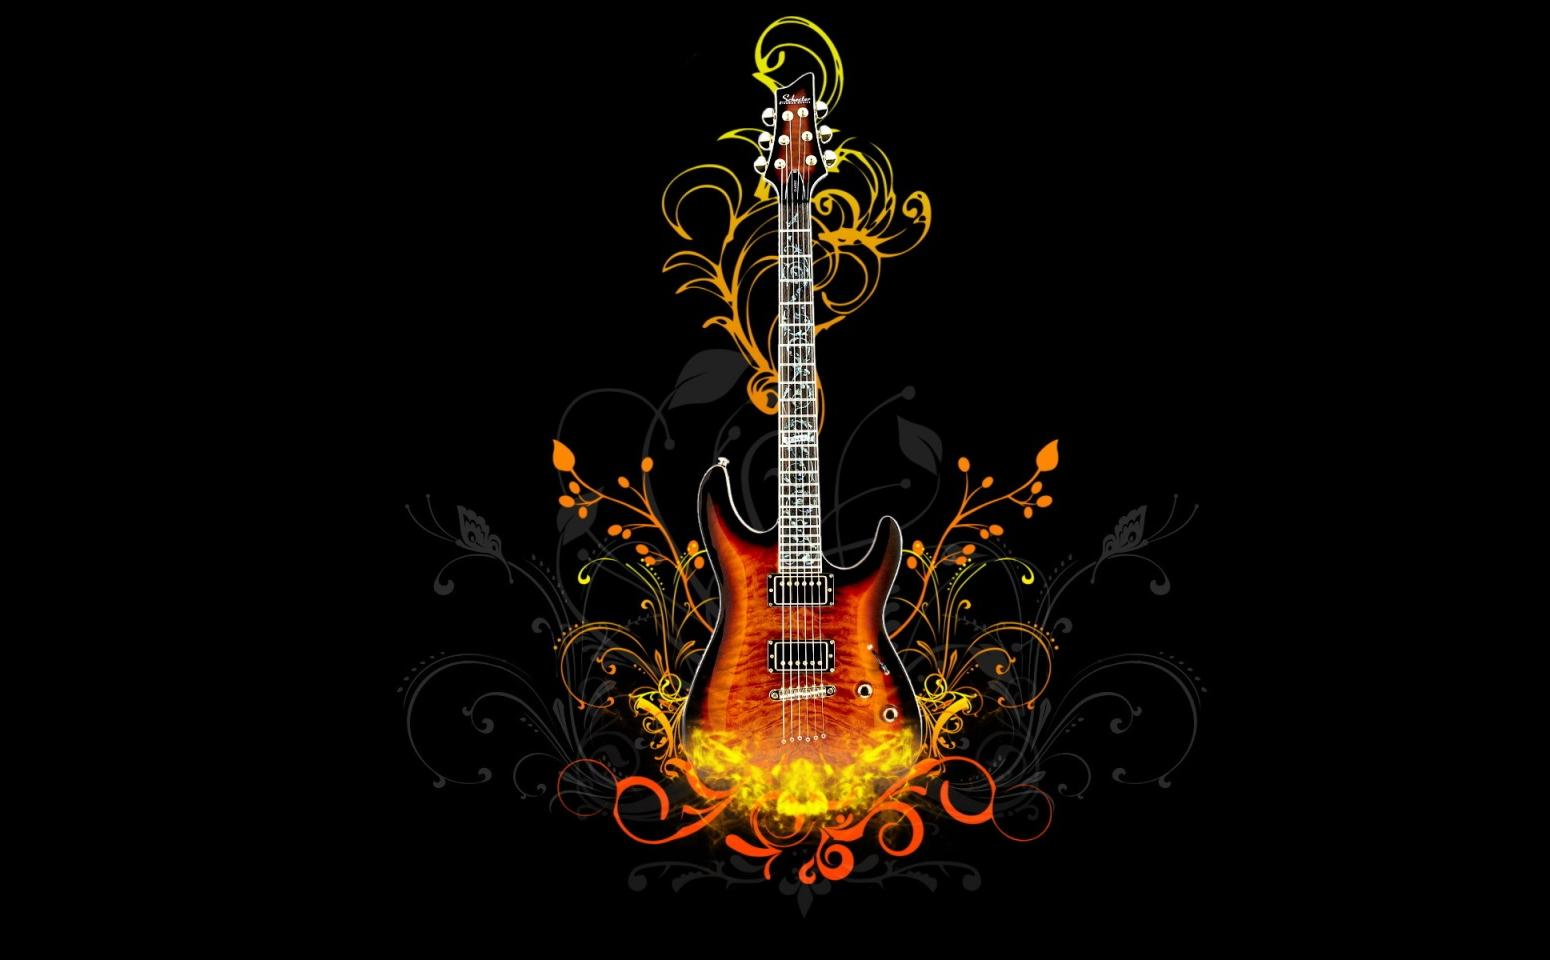 http://3.bp.blogspot.com/_2UbsSBz9ckE/SywflNvQclI/AAAAAAAAApA/kICEhZv1wgc/s1600/Guitar_and_ribbons_1280x960%20hd%20wallpaper.JPG